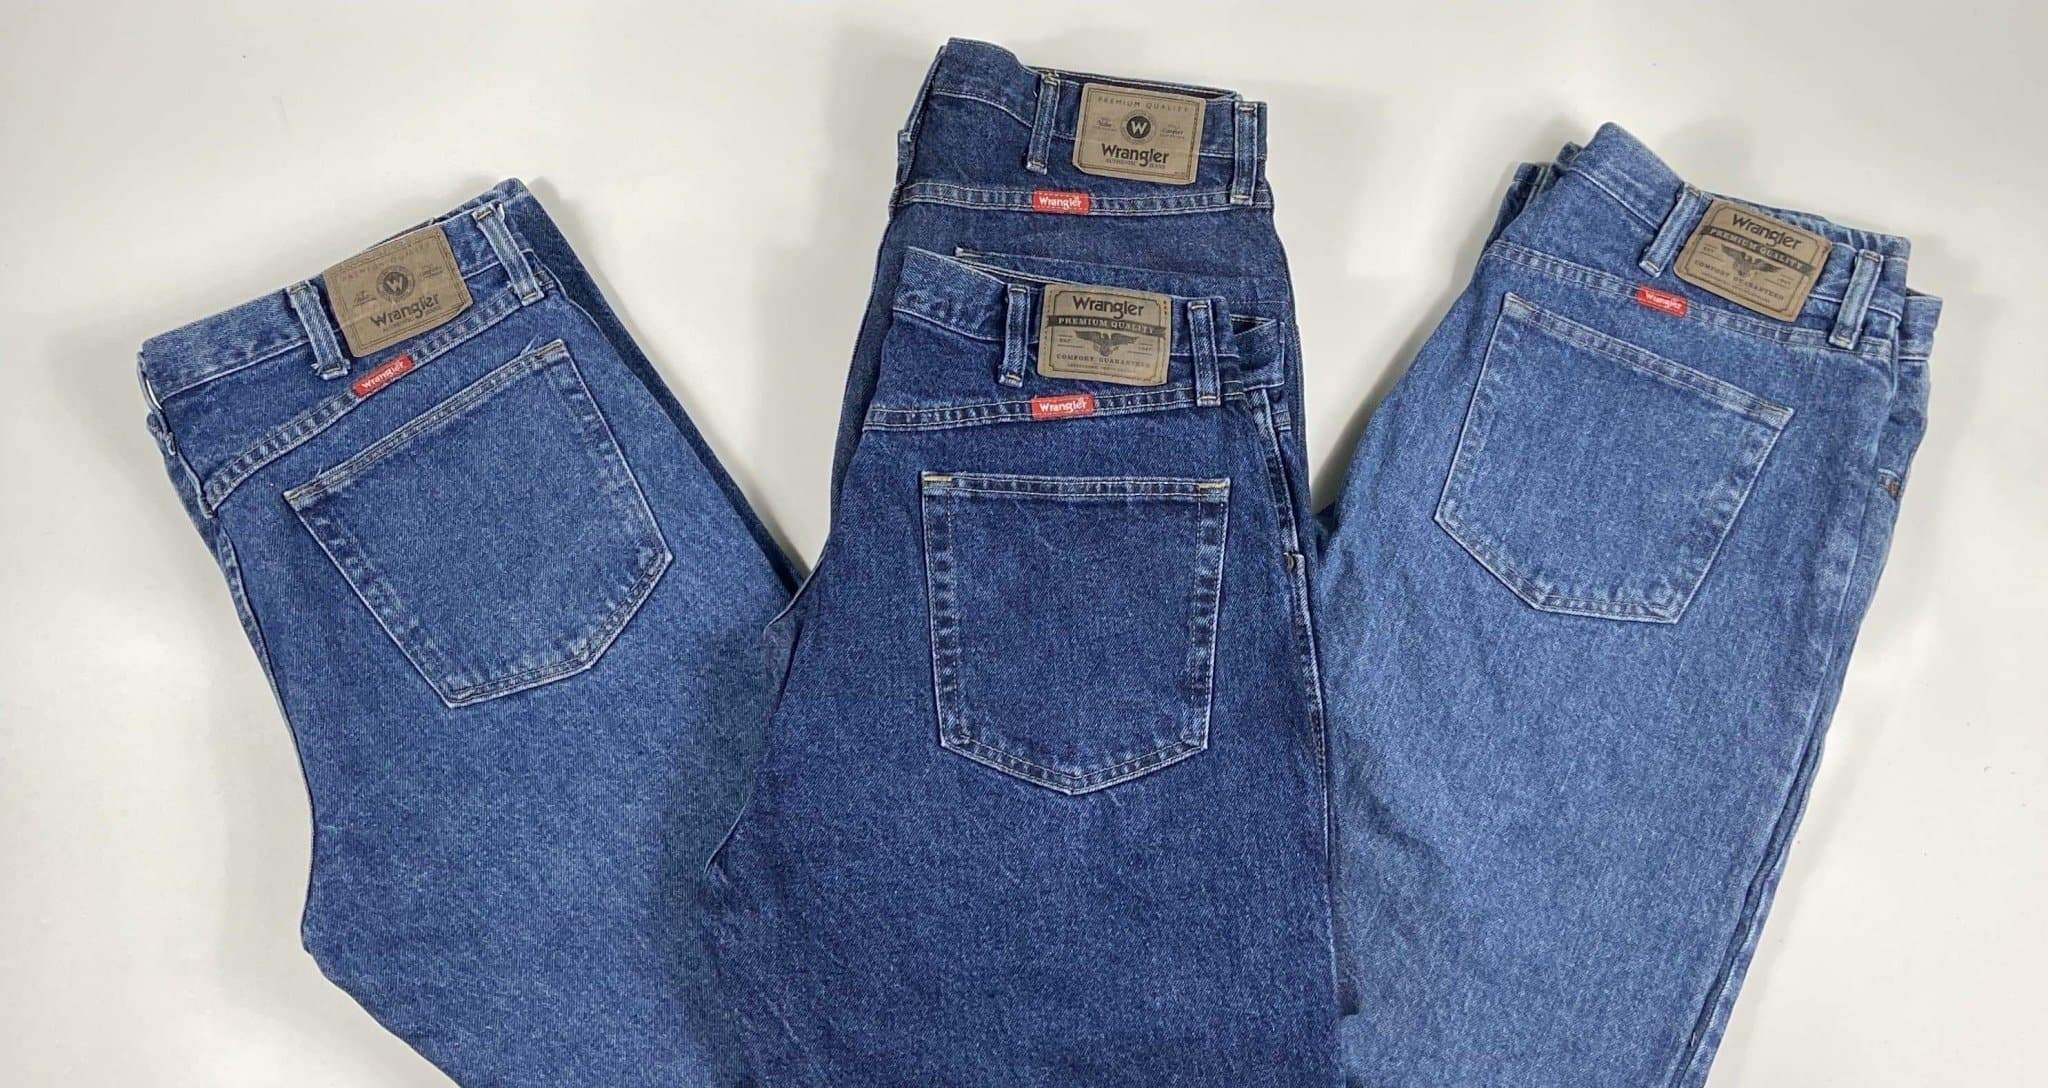 Vintage Original Wrangler Classic Blue Denim Jeans Waist 32 Length 32 - Discounted Deals UK